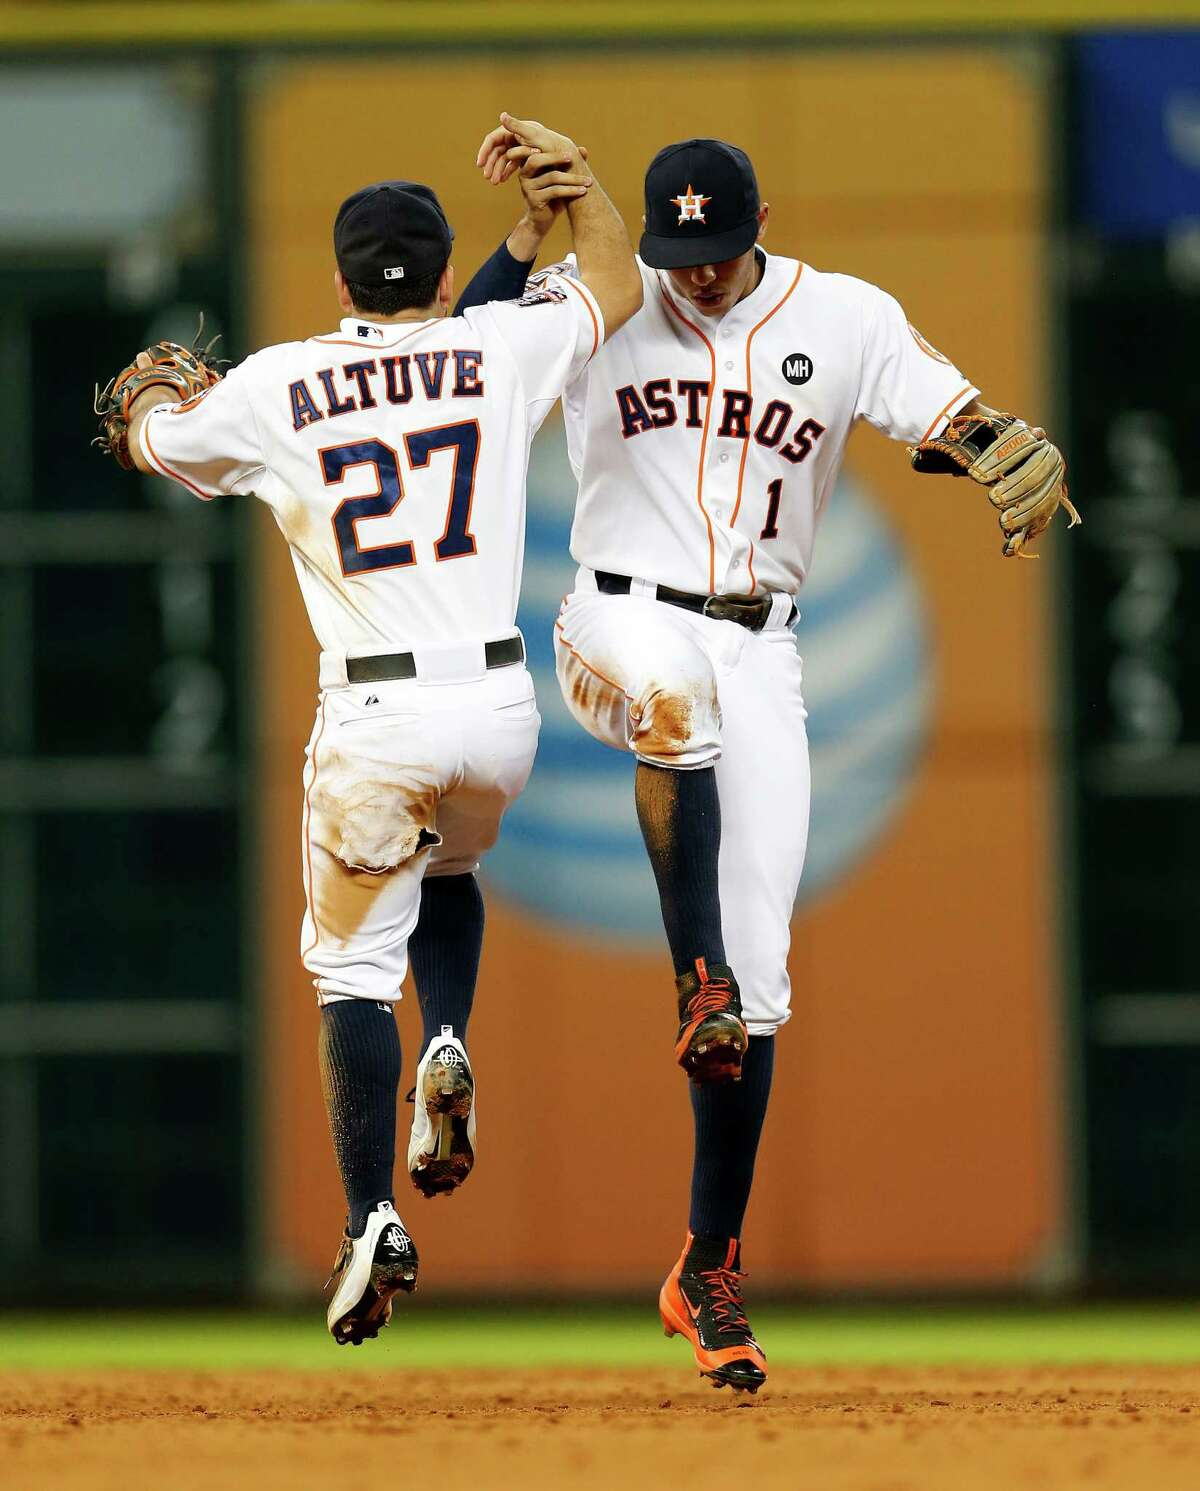 Reason to have faith: Young stars on hand This is still a young team with a pair of budding stars in Jose Altuve and Carlos Correa. But given the utter lack of production in several lineup spots right now, they'll need to step things up to compensate.